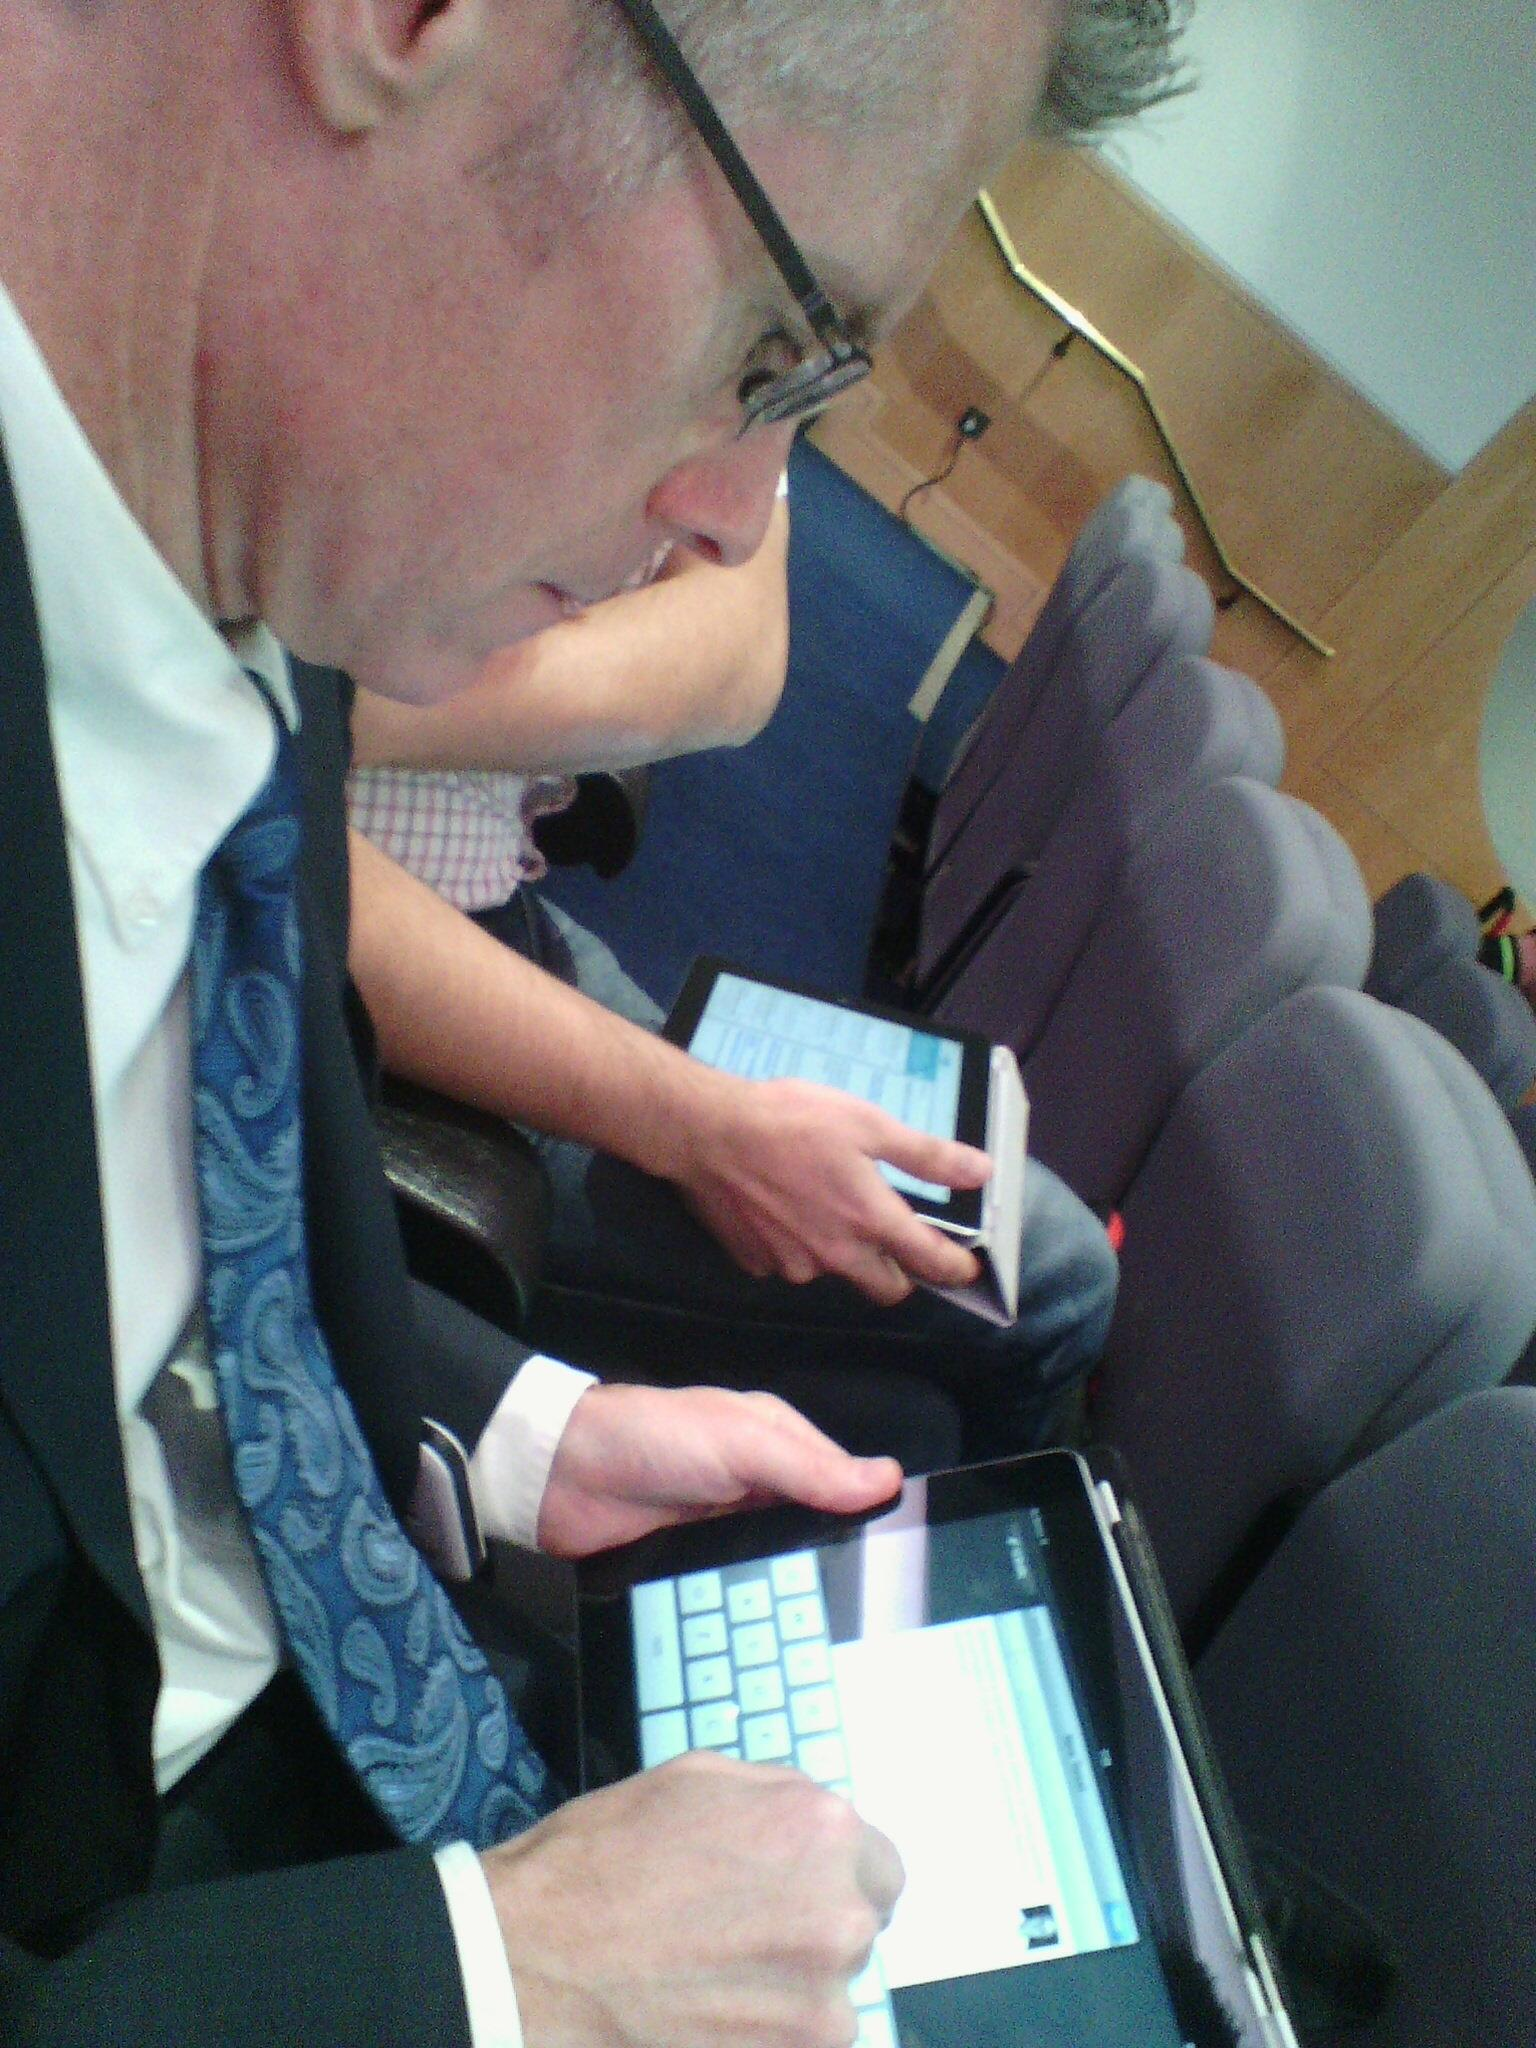 Malcolm campbell on iPad at solo13